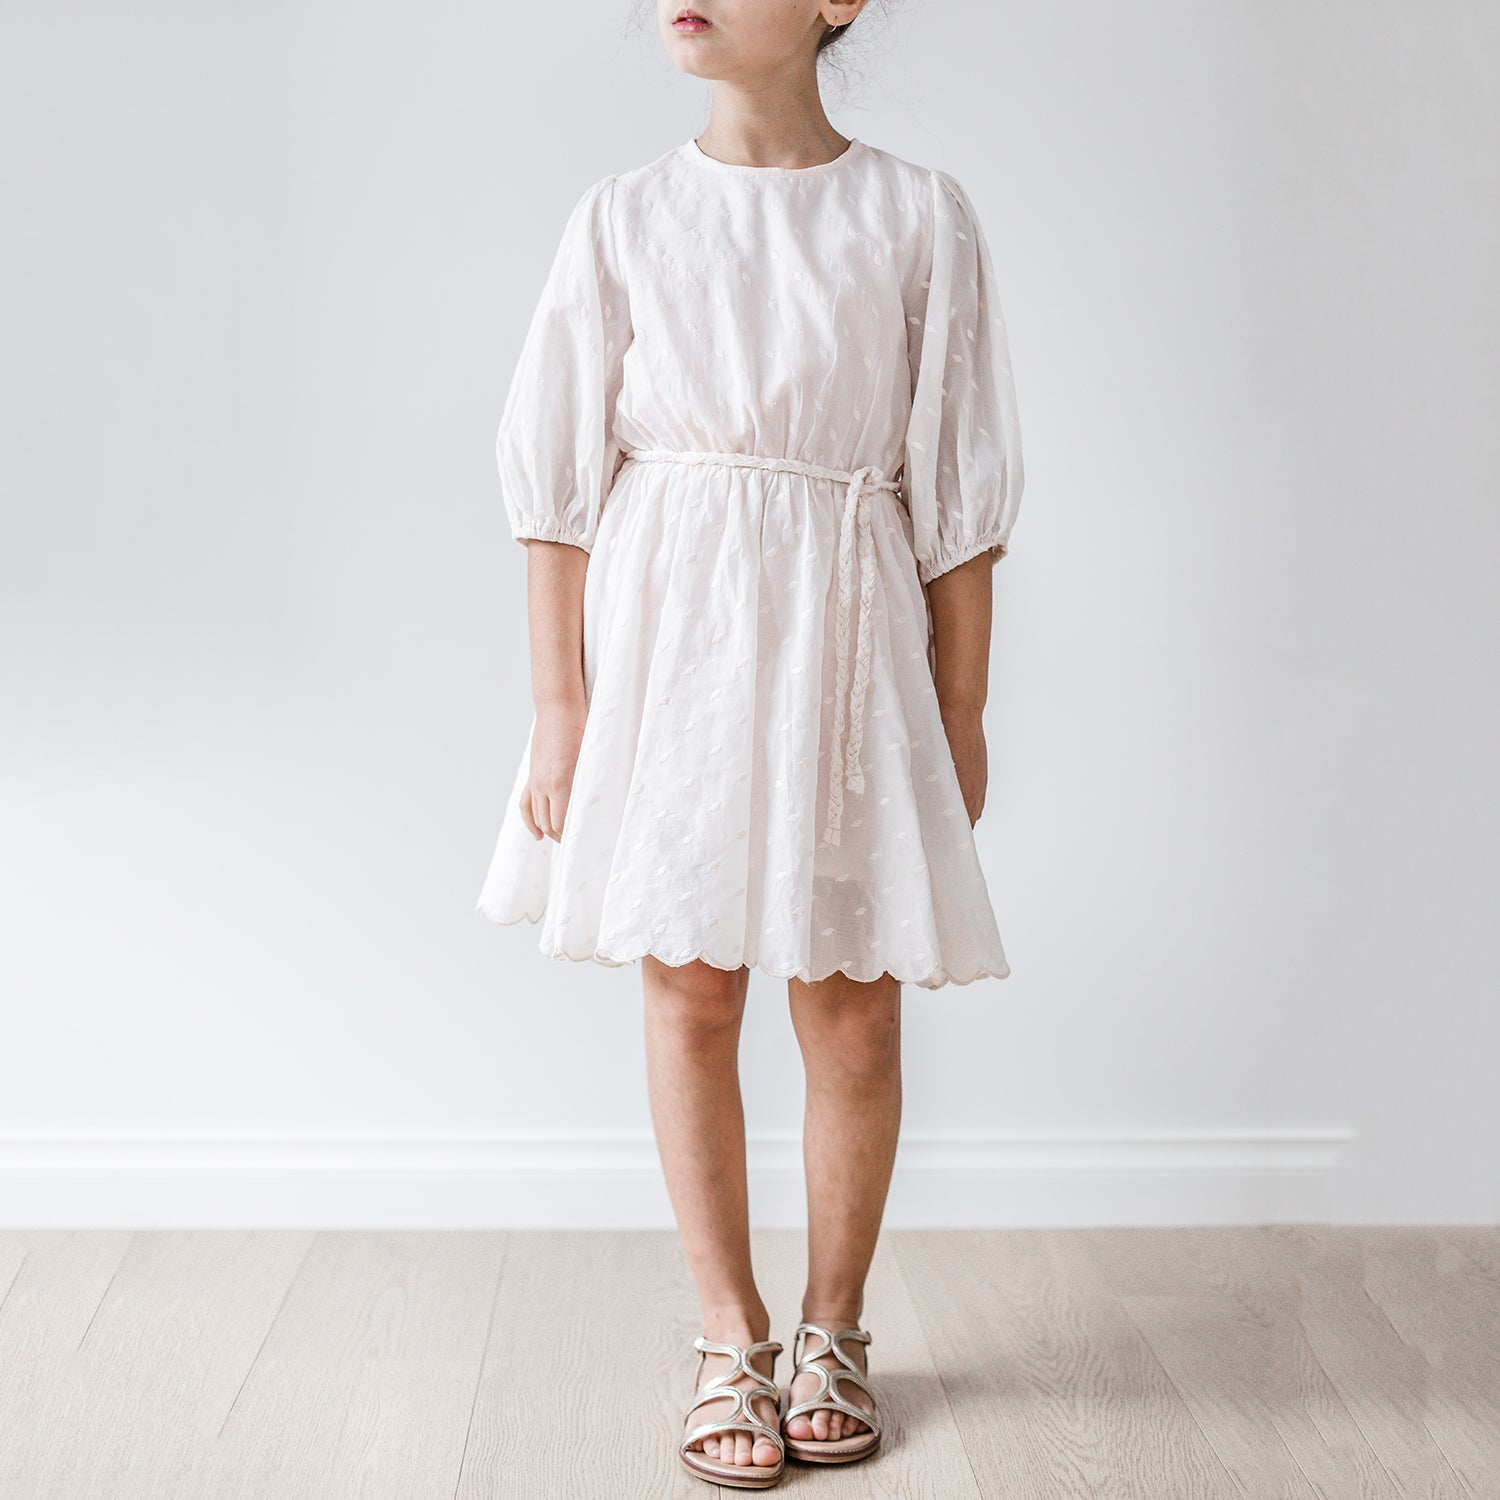 yoya, kids, girls, petite amalie, summer, lightweight, long sleeved, embroidered, tie-waist, scalloped hem midi dress